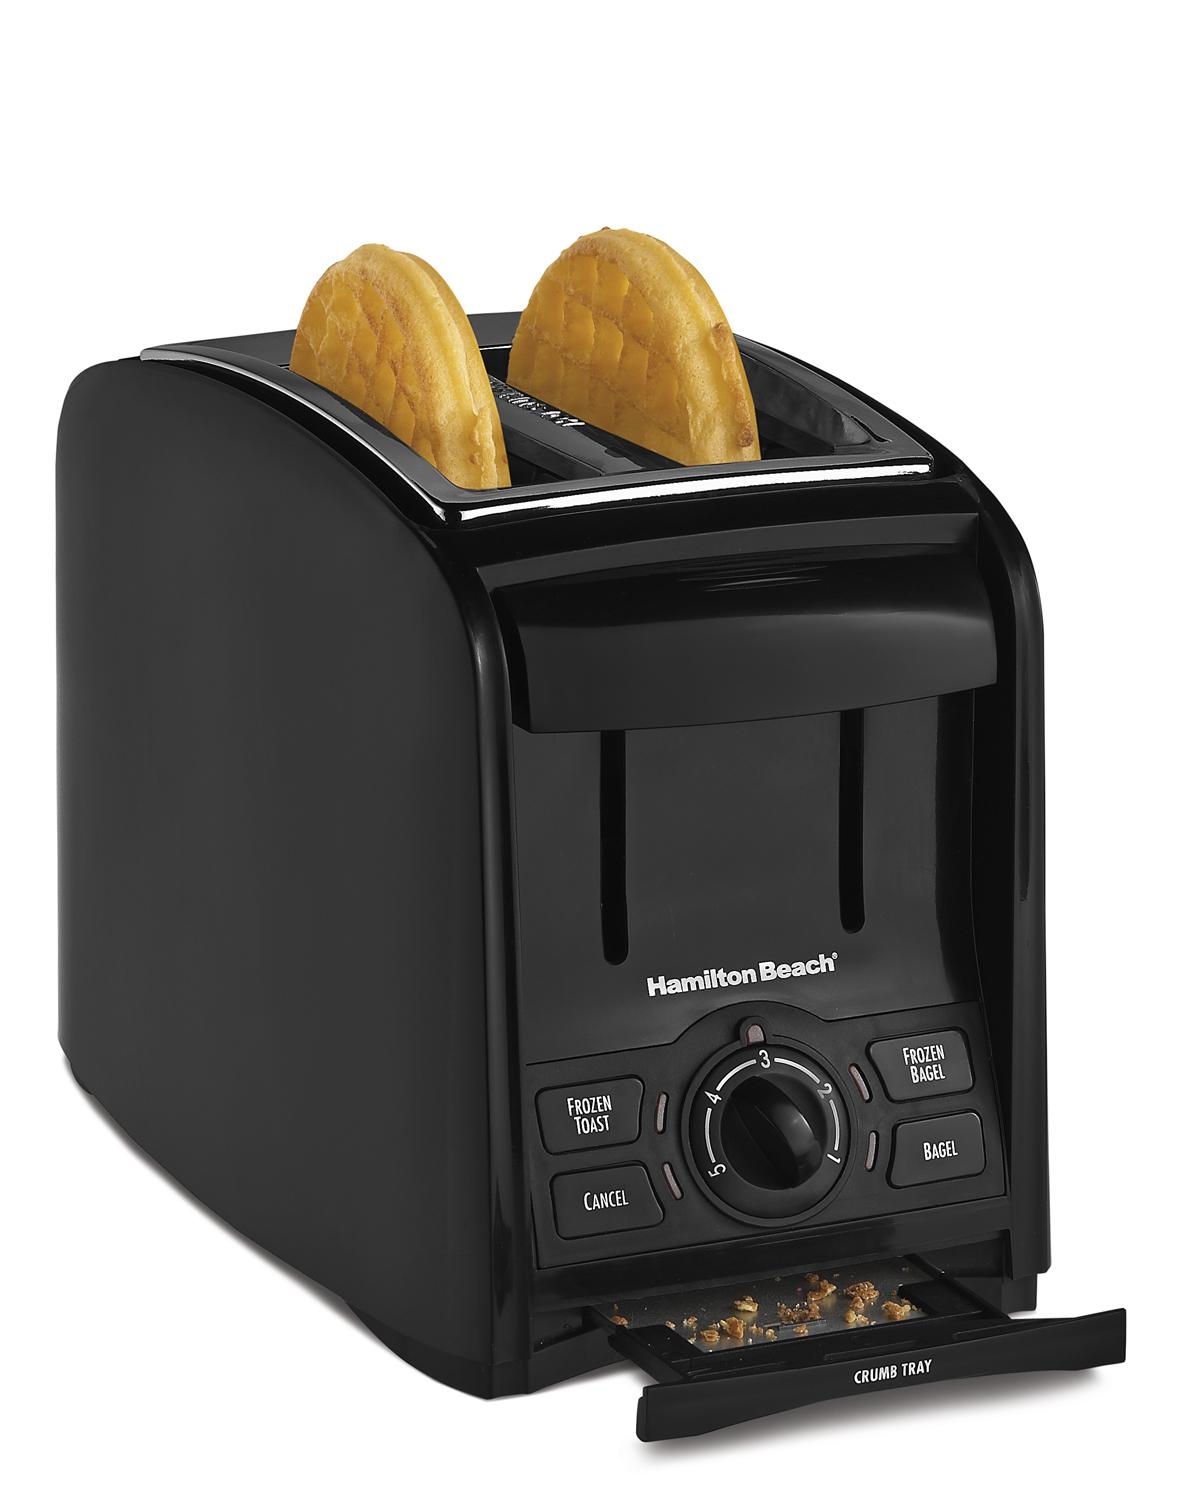 Hamilton beach 4 slice cool touch toaster - Cool touch exterior convection toaster oven ...